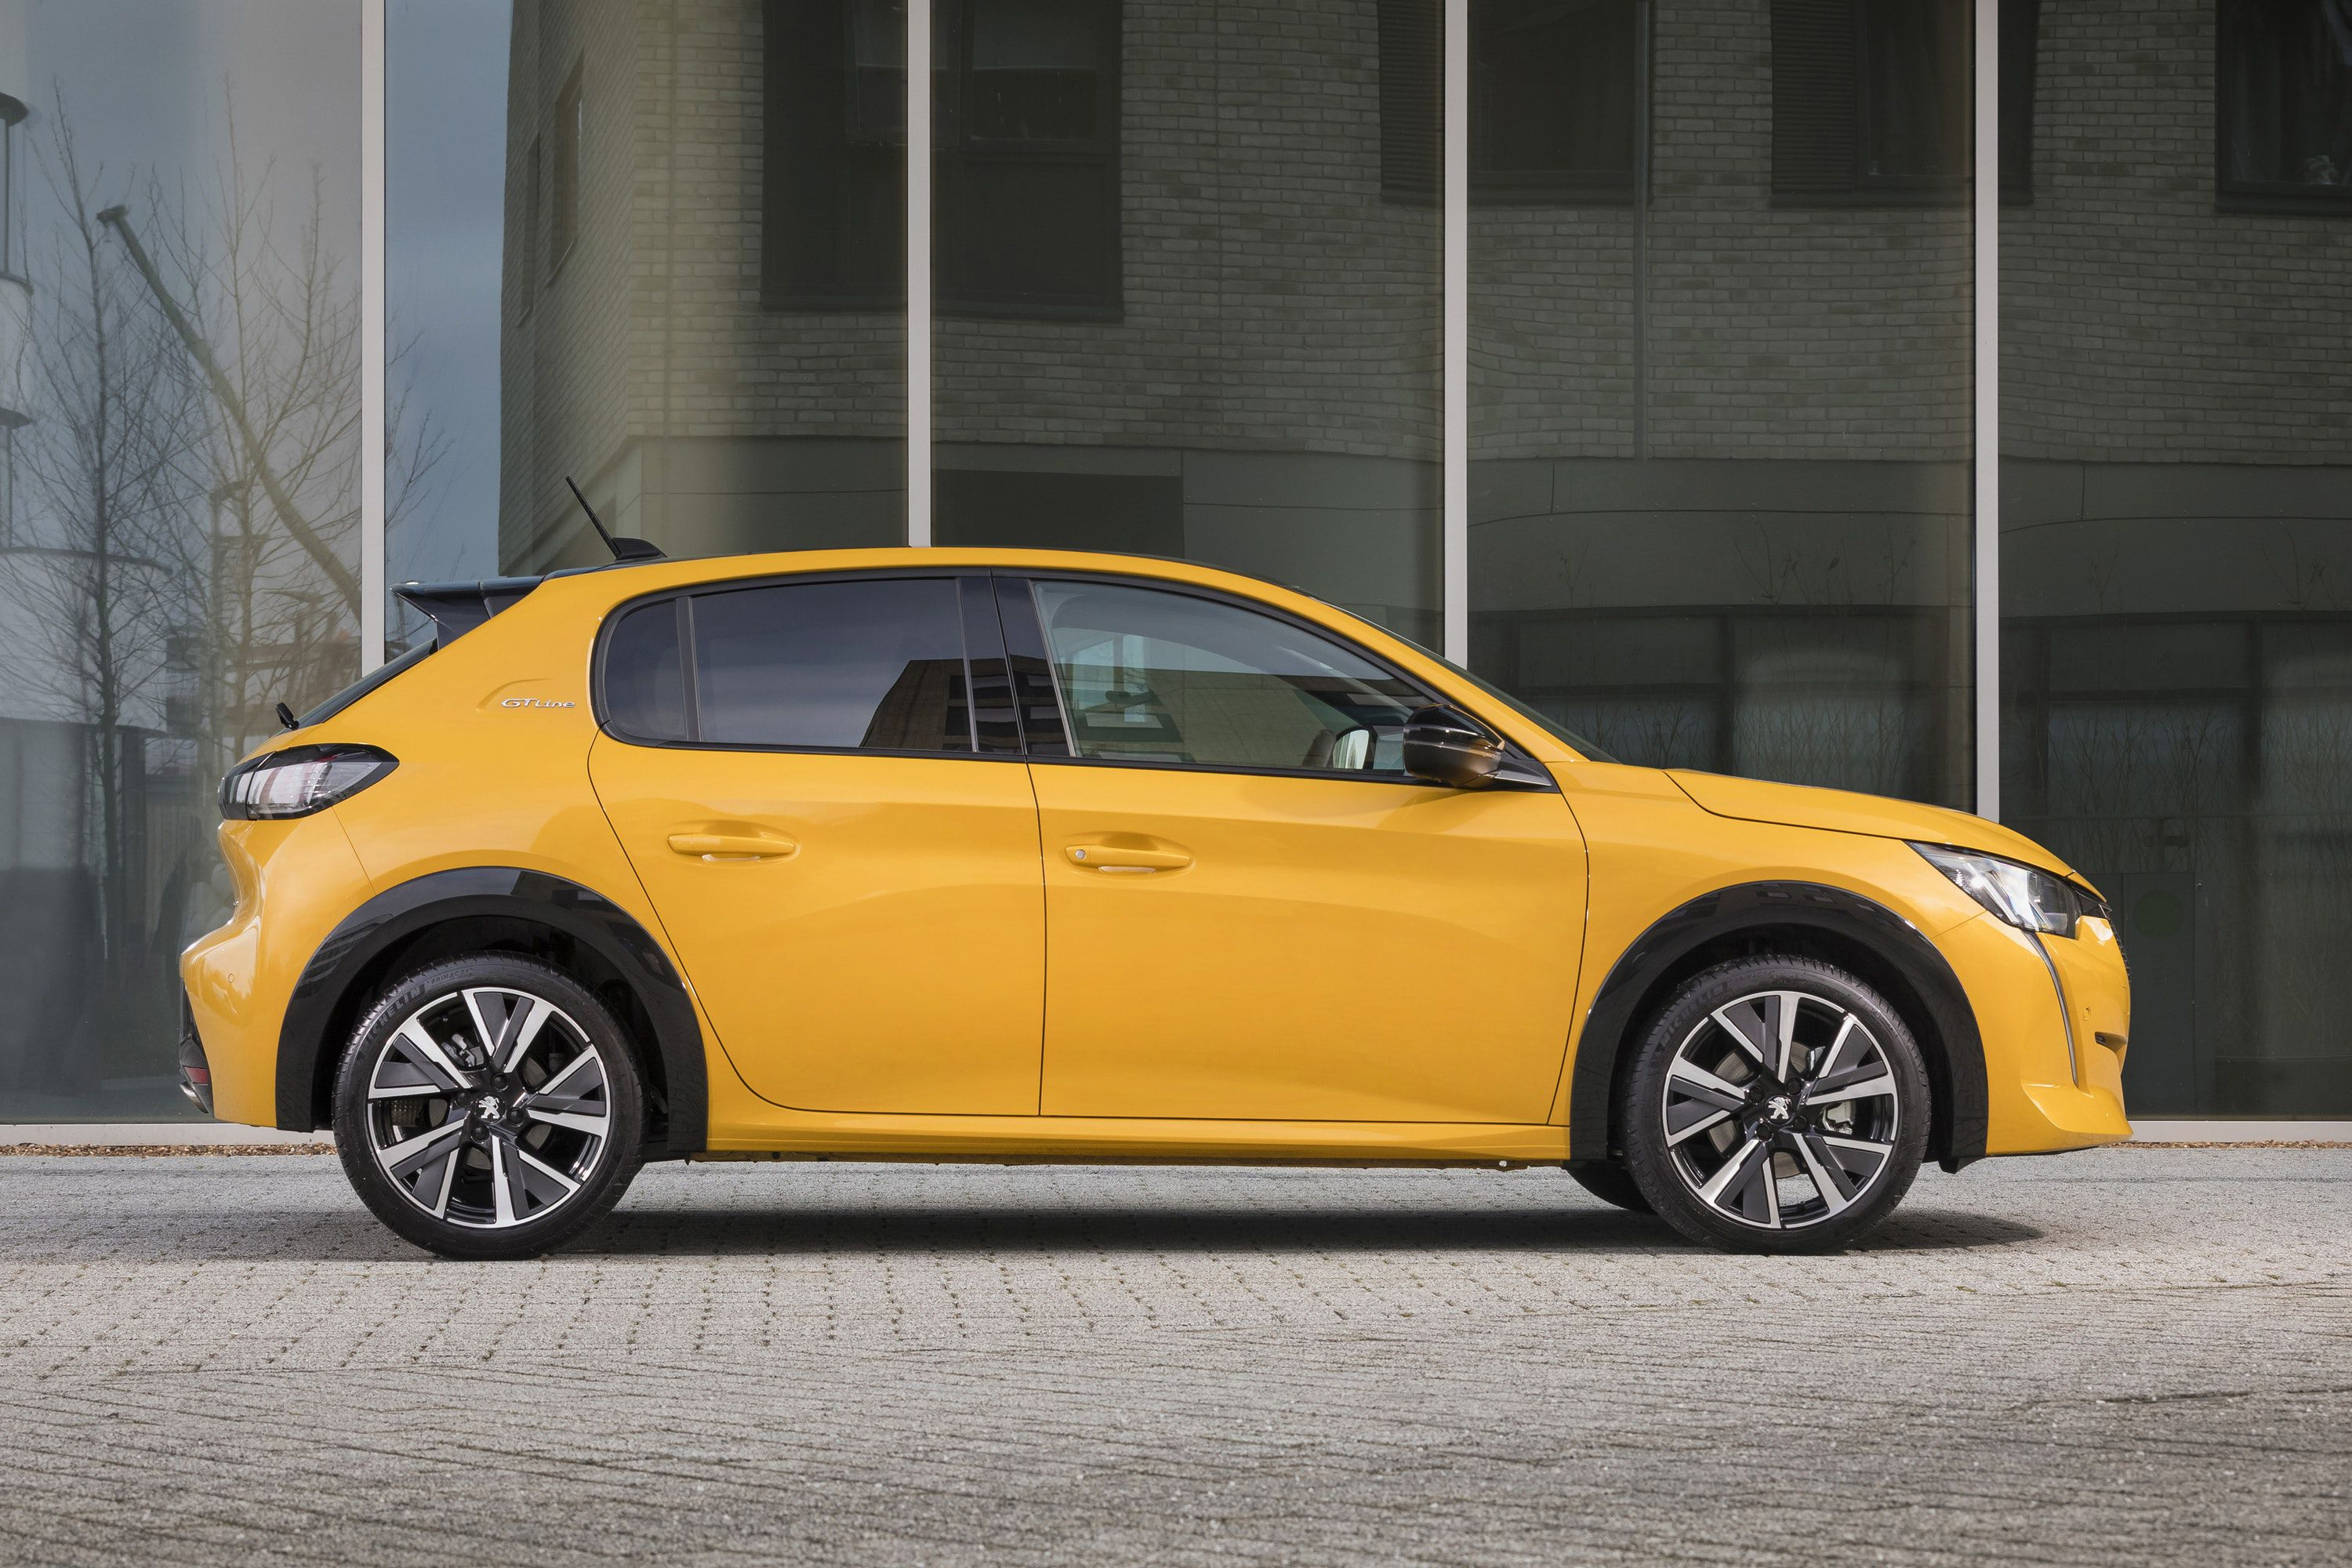 Side view of a Yellow Peugeot 208